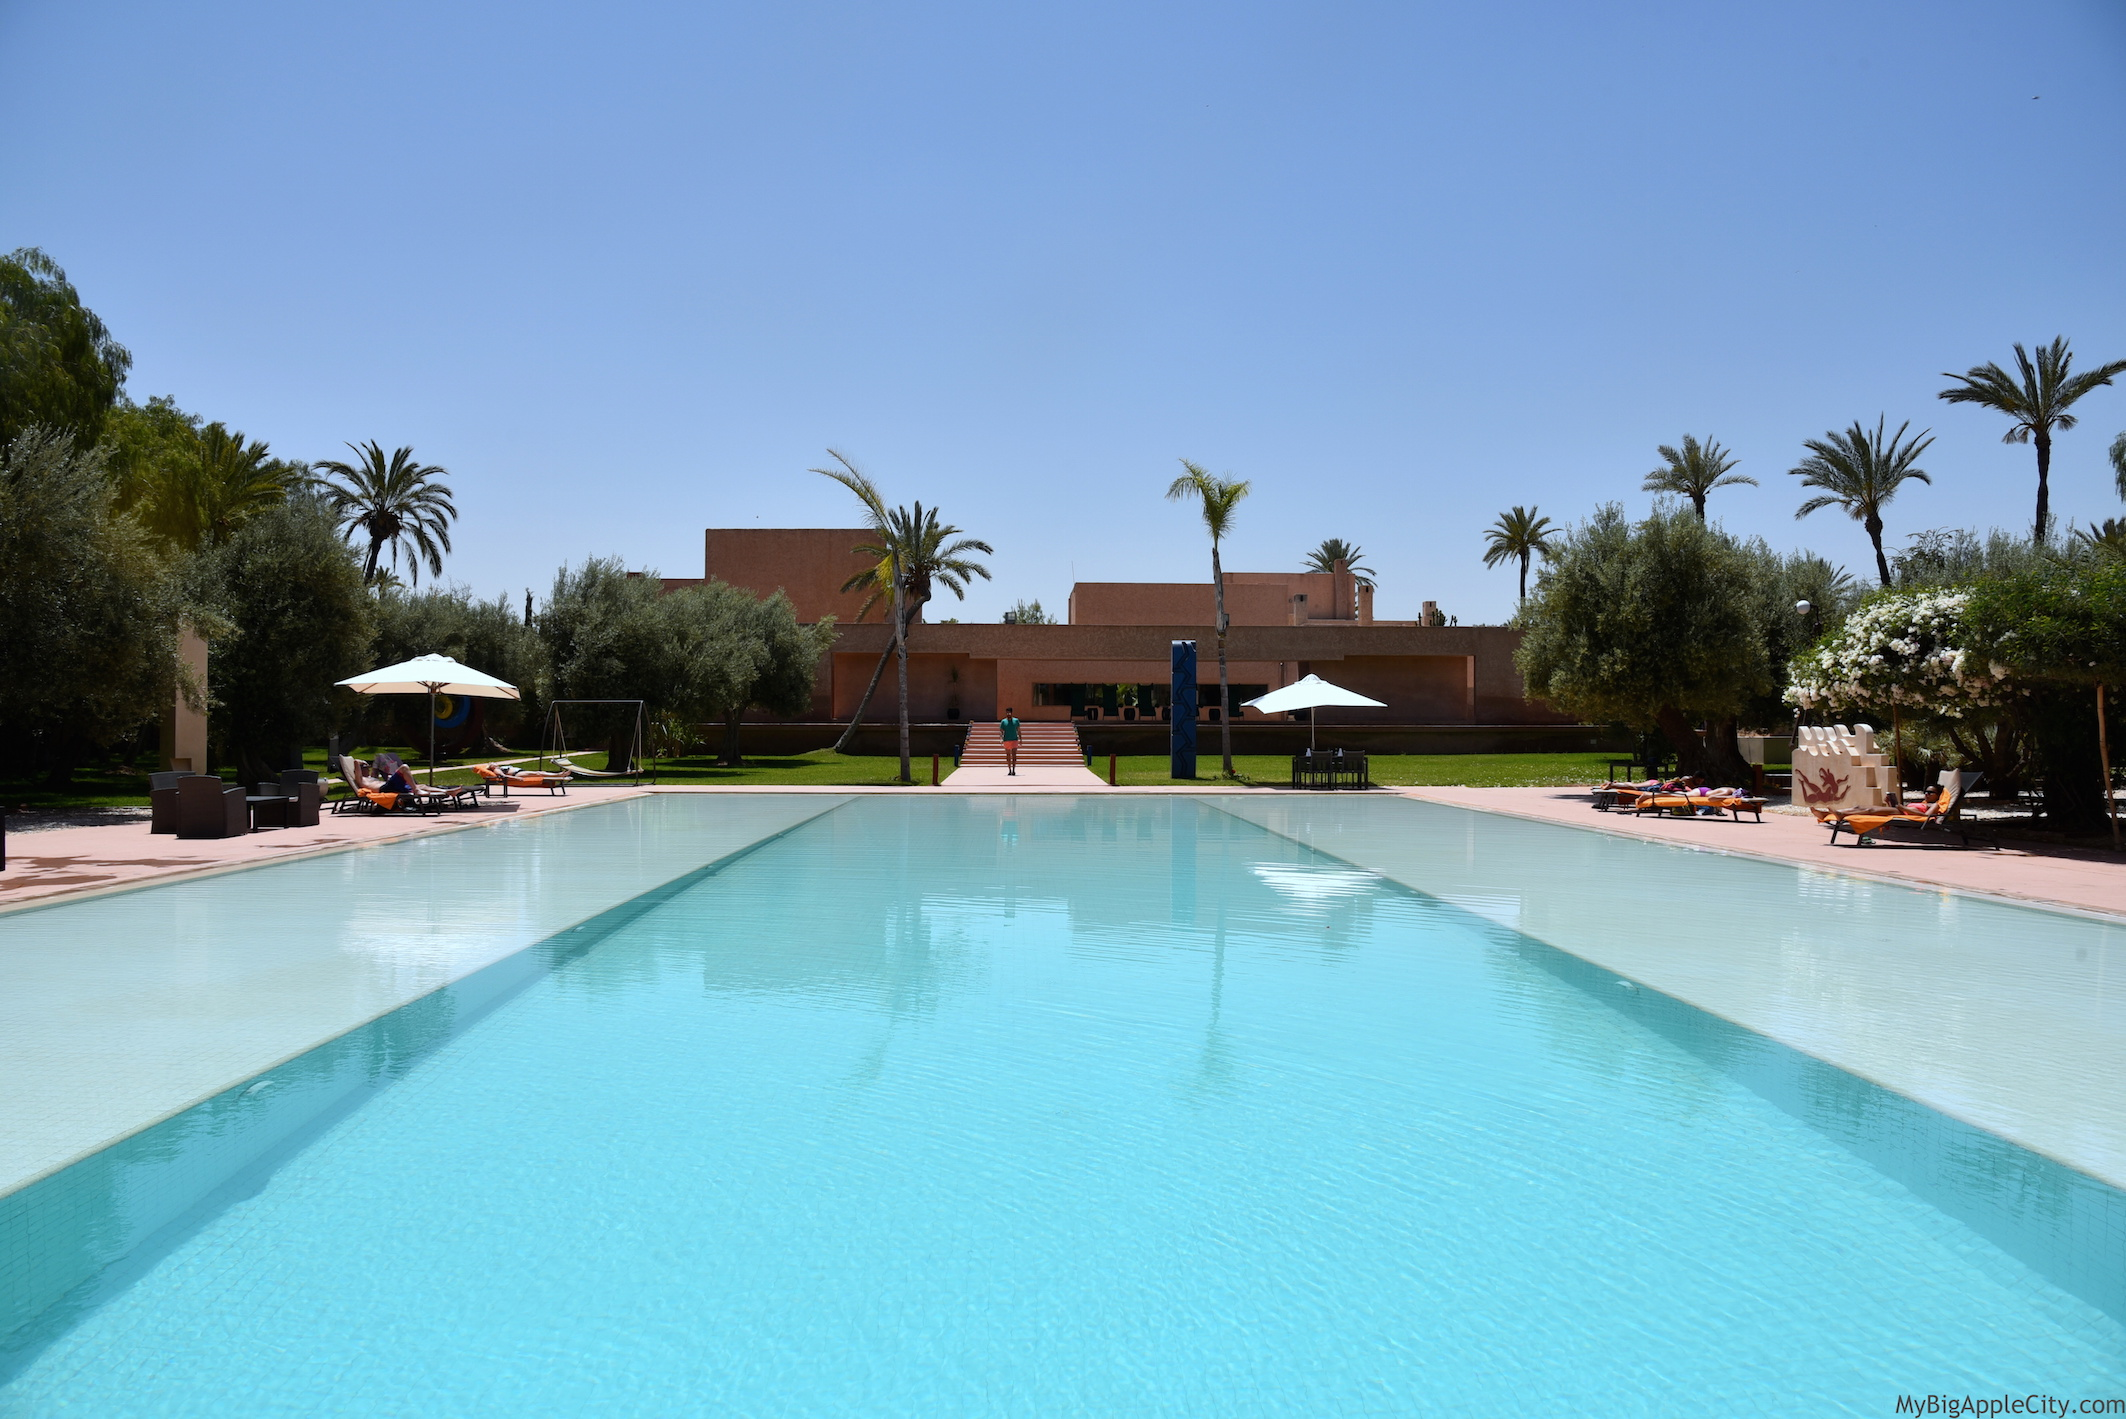 Dar-Sabra-Hotel-Marrakech-Travel-Blogger-2016-MyBigAppleCity